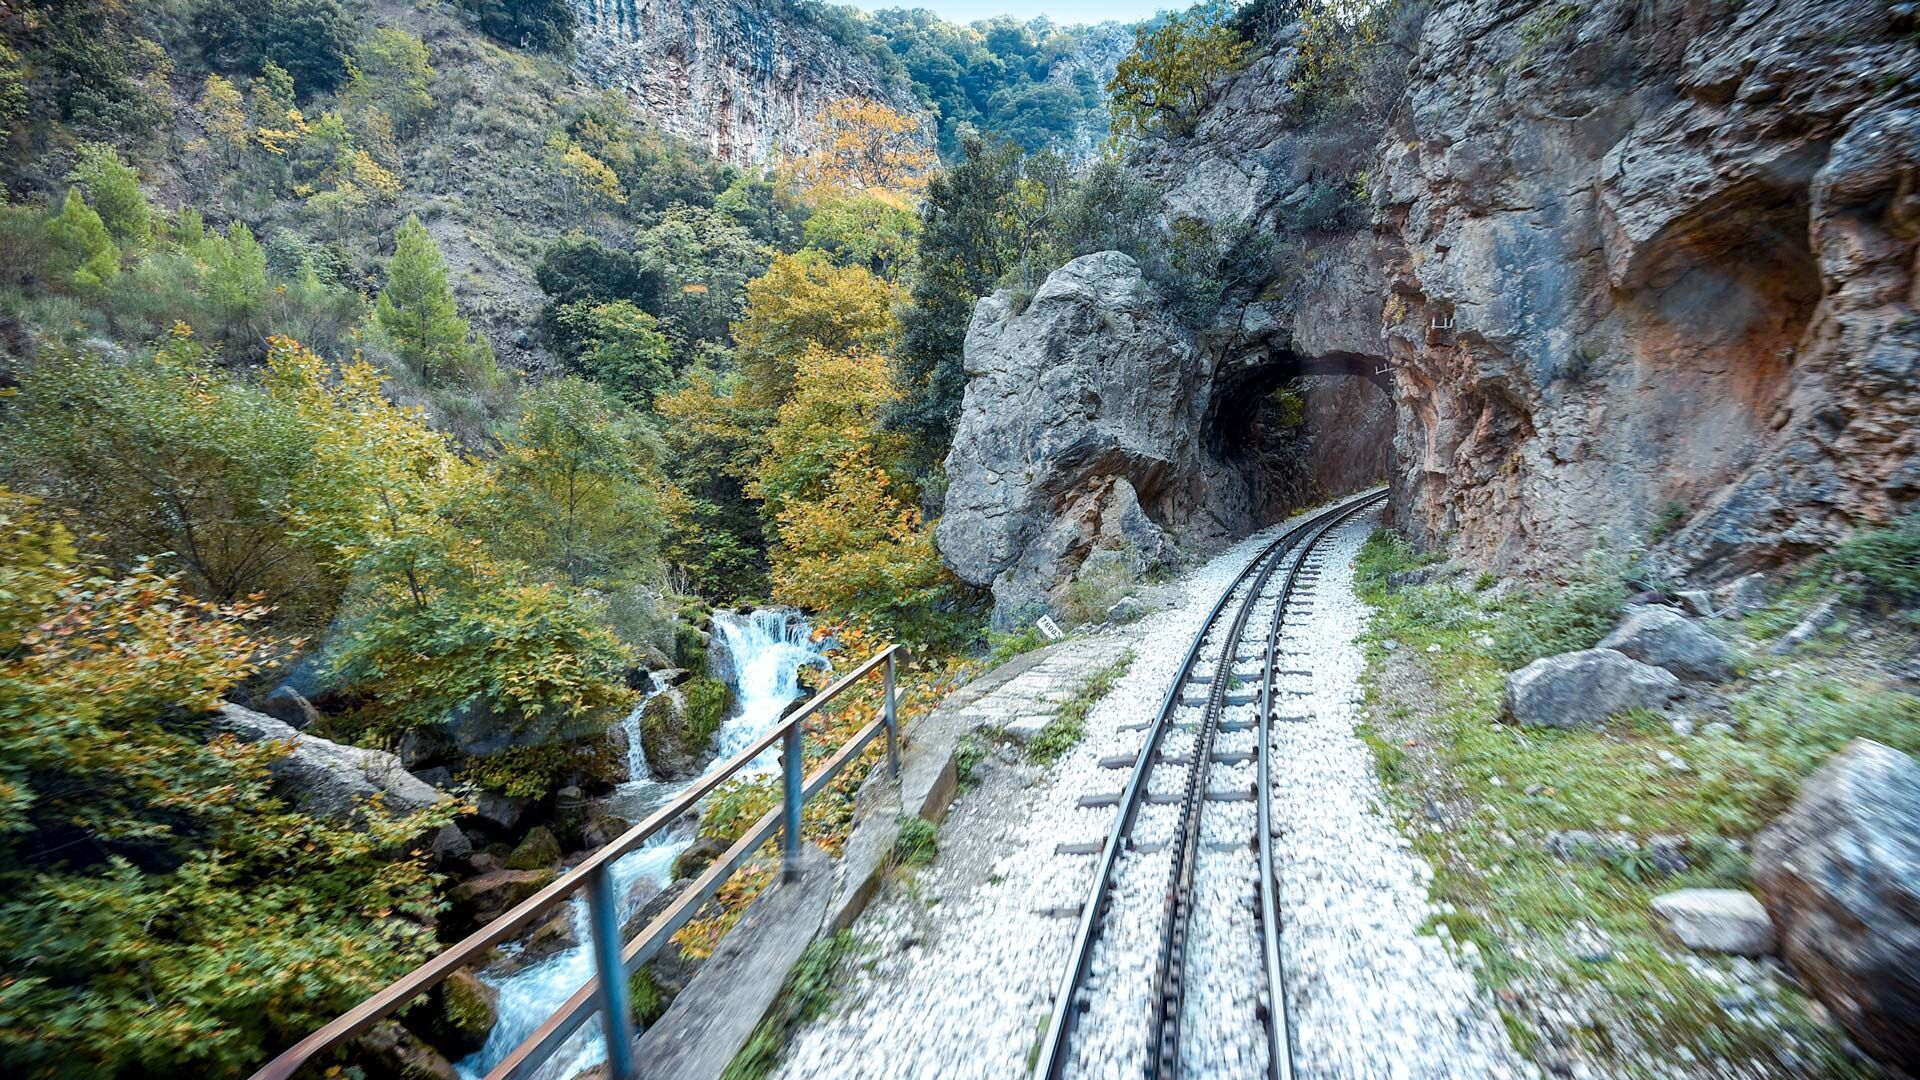 Odontotos rack railway offers a stunning train ride through the canyon